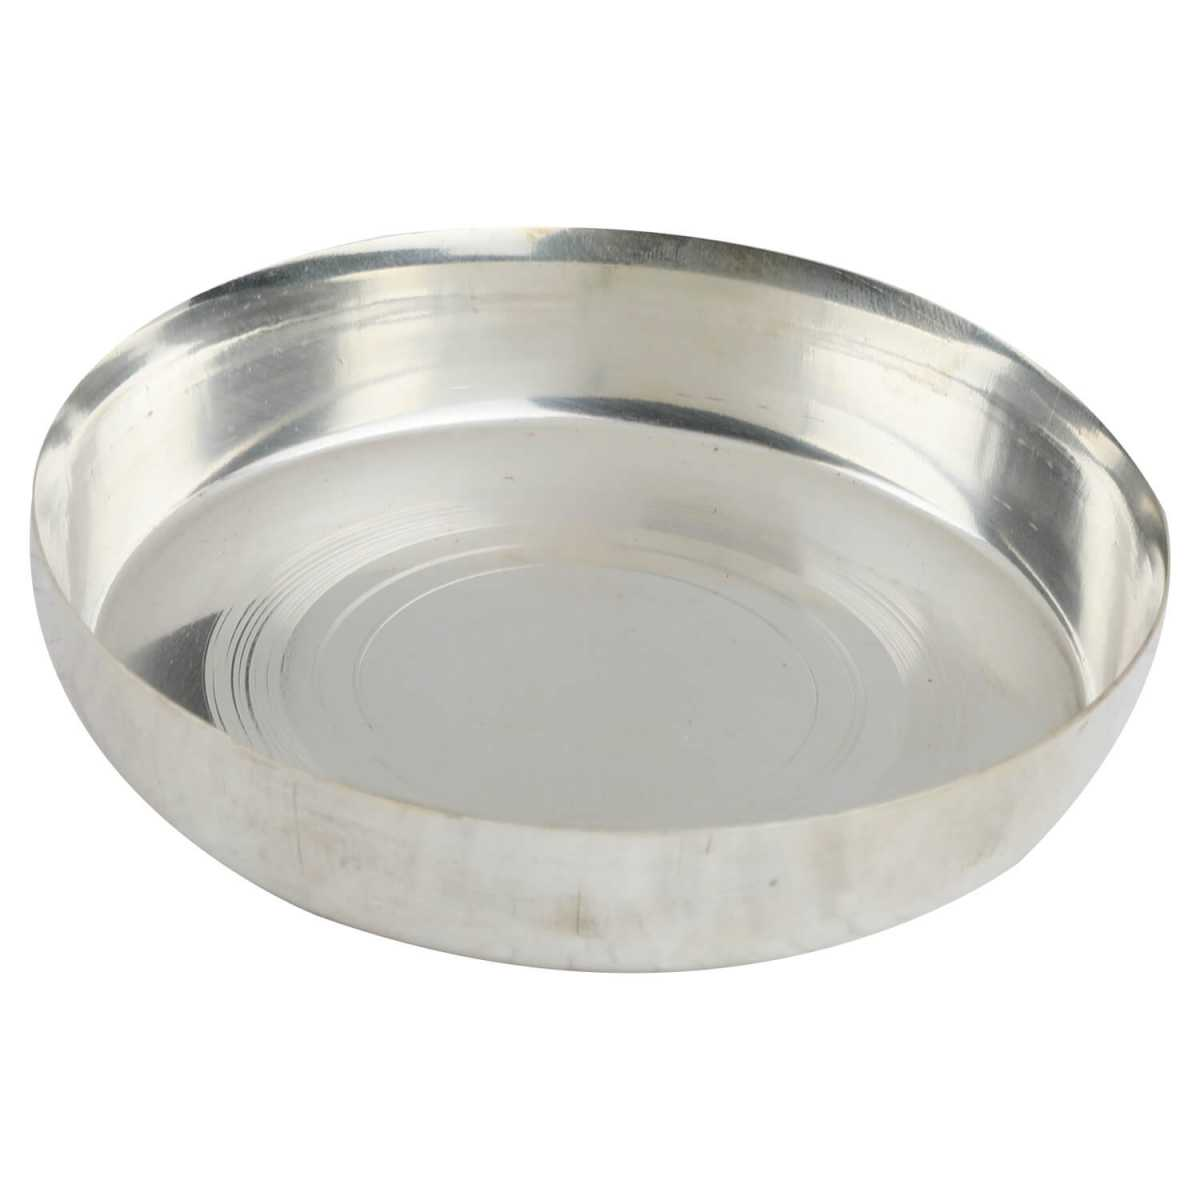 Silver Shine Silver Plated Thali For Multi Purpose use Set of 1